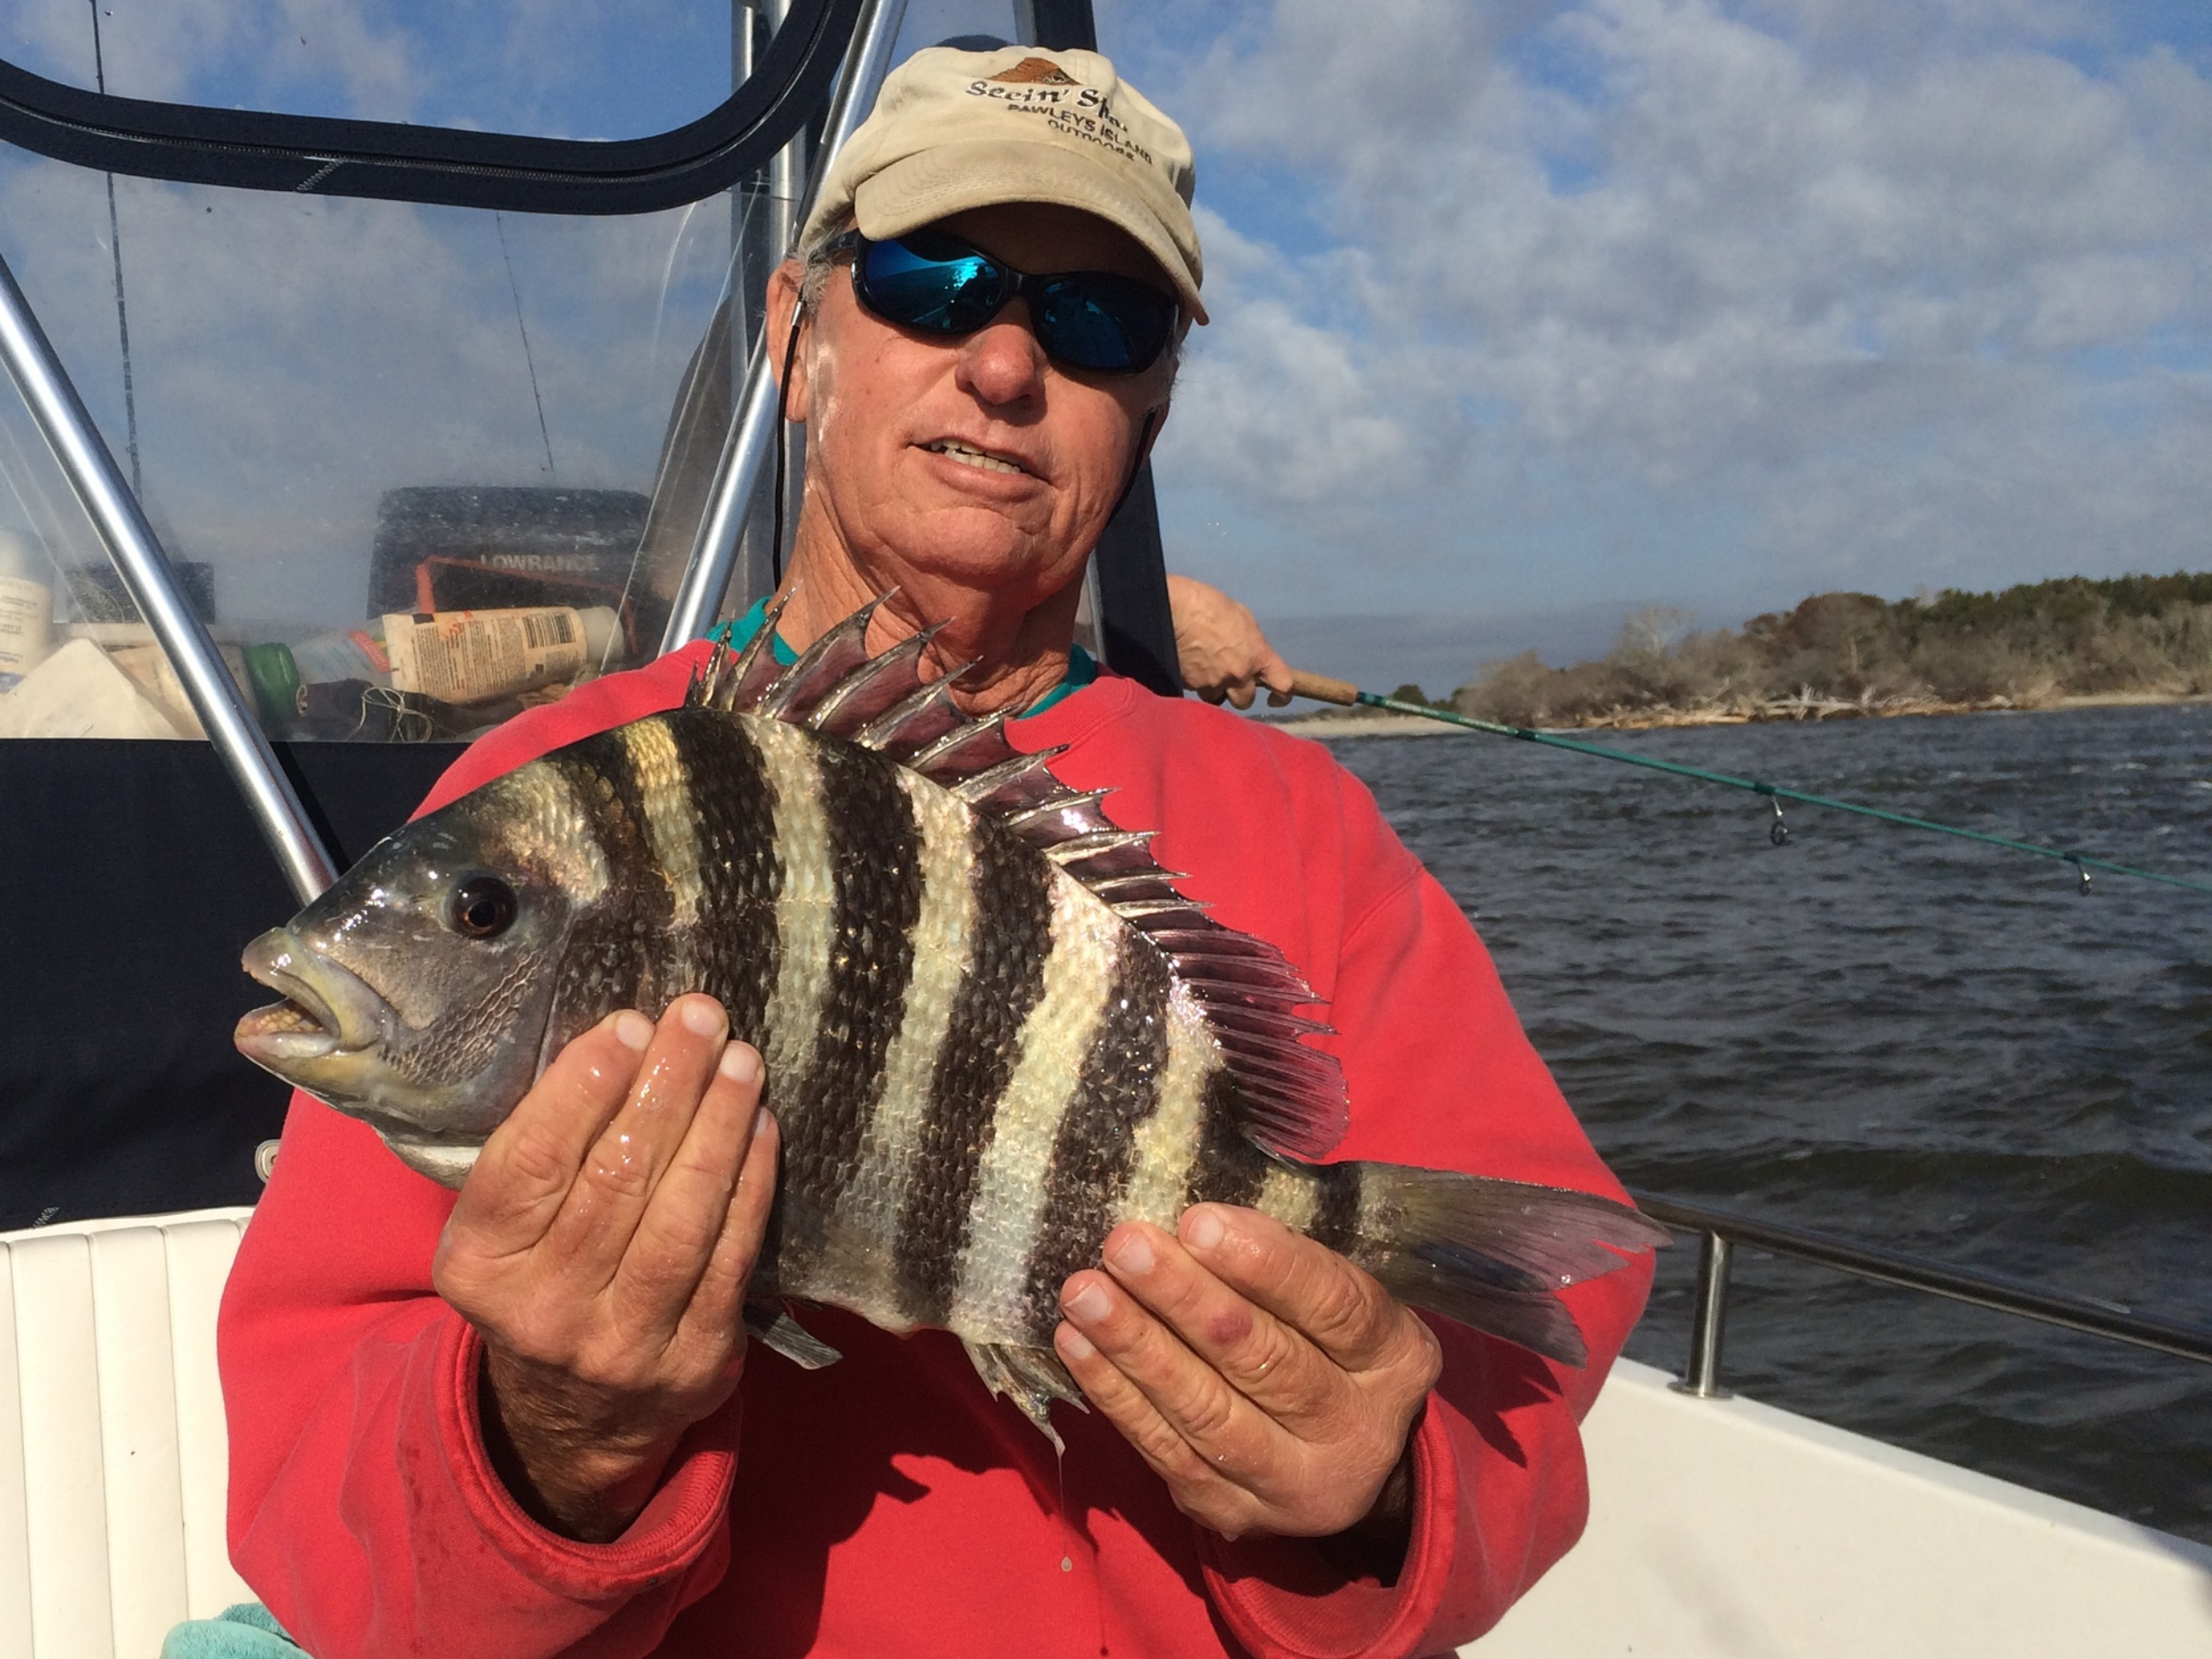 A sheepshead caught by a frequent guest in March 2016.